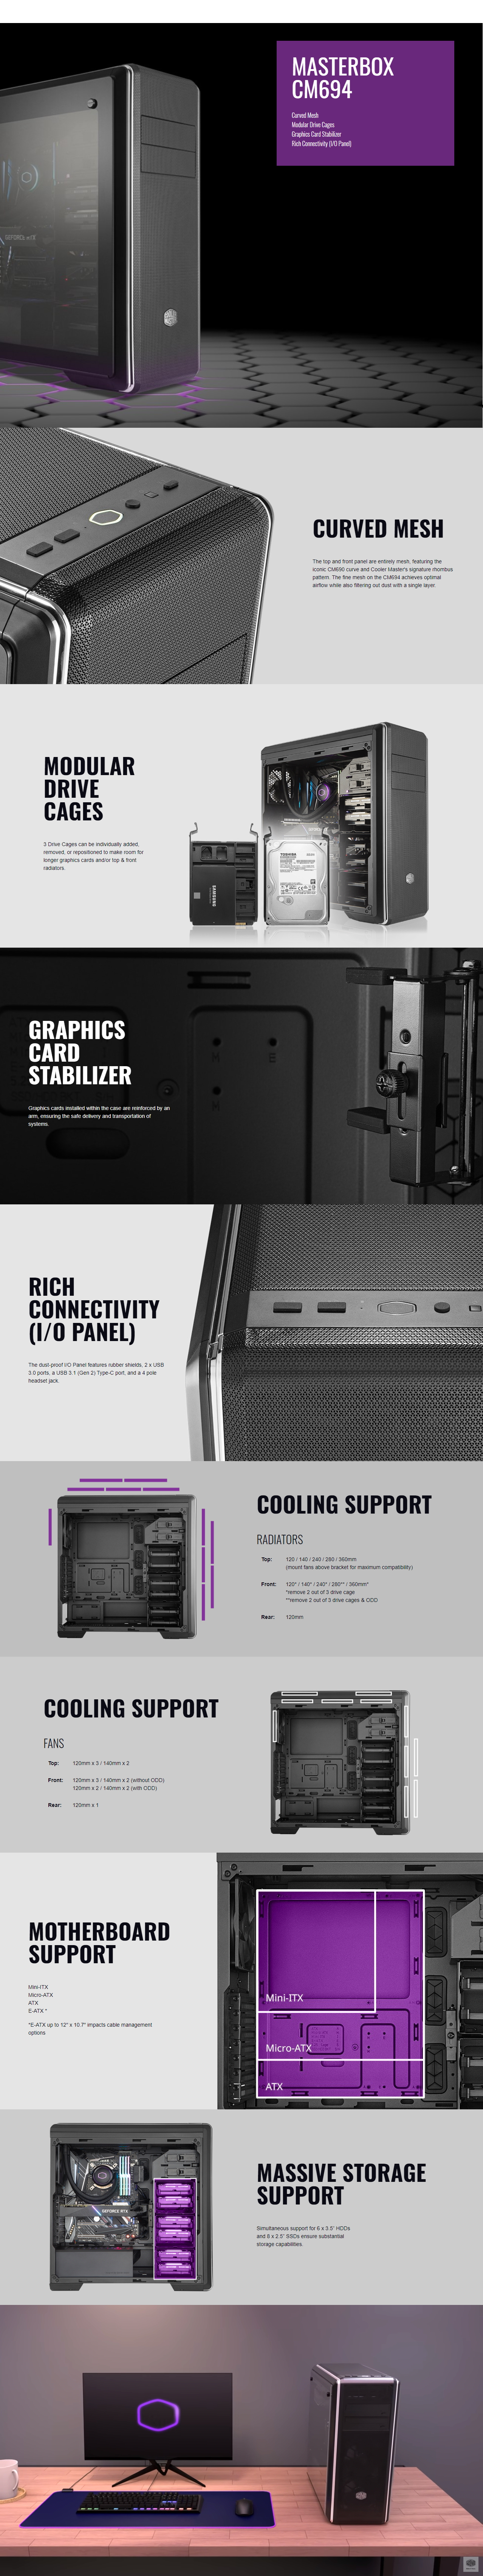 A large marketing image providing additional information about the product Cooler Master MasterBox CM694 Mid Tower Case - Additional alt info not provided